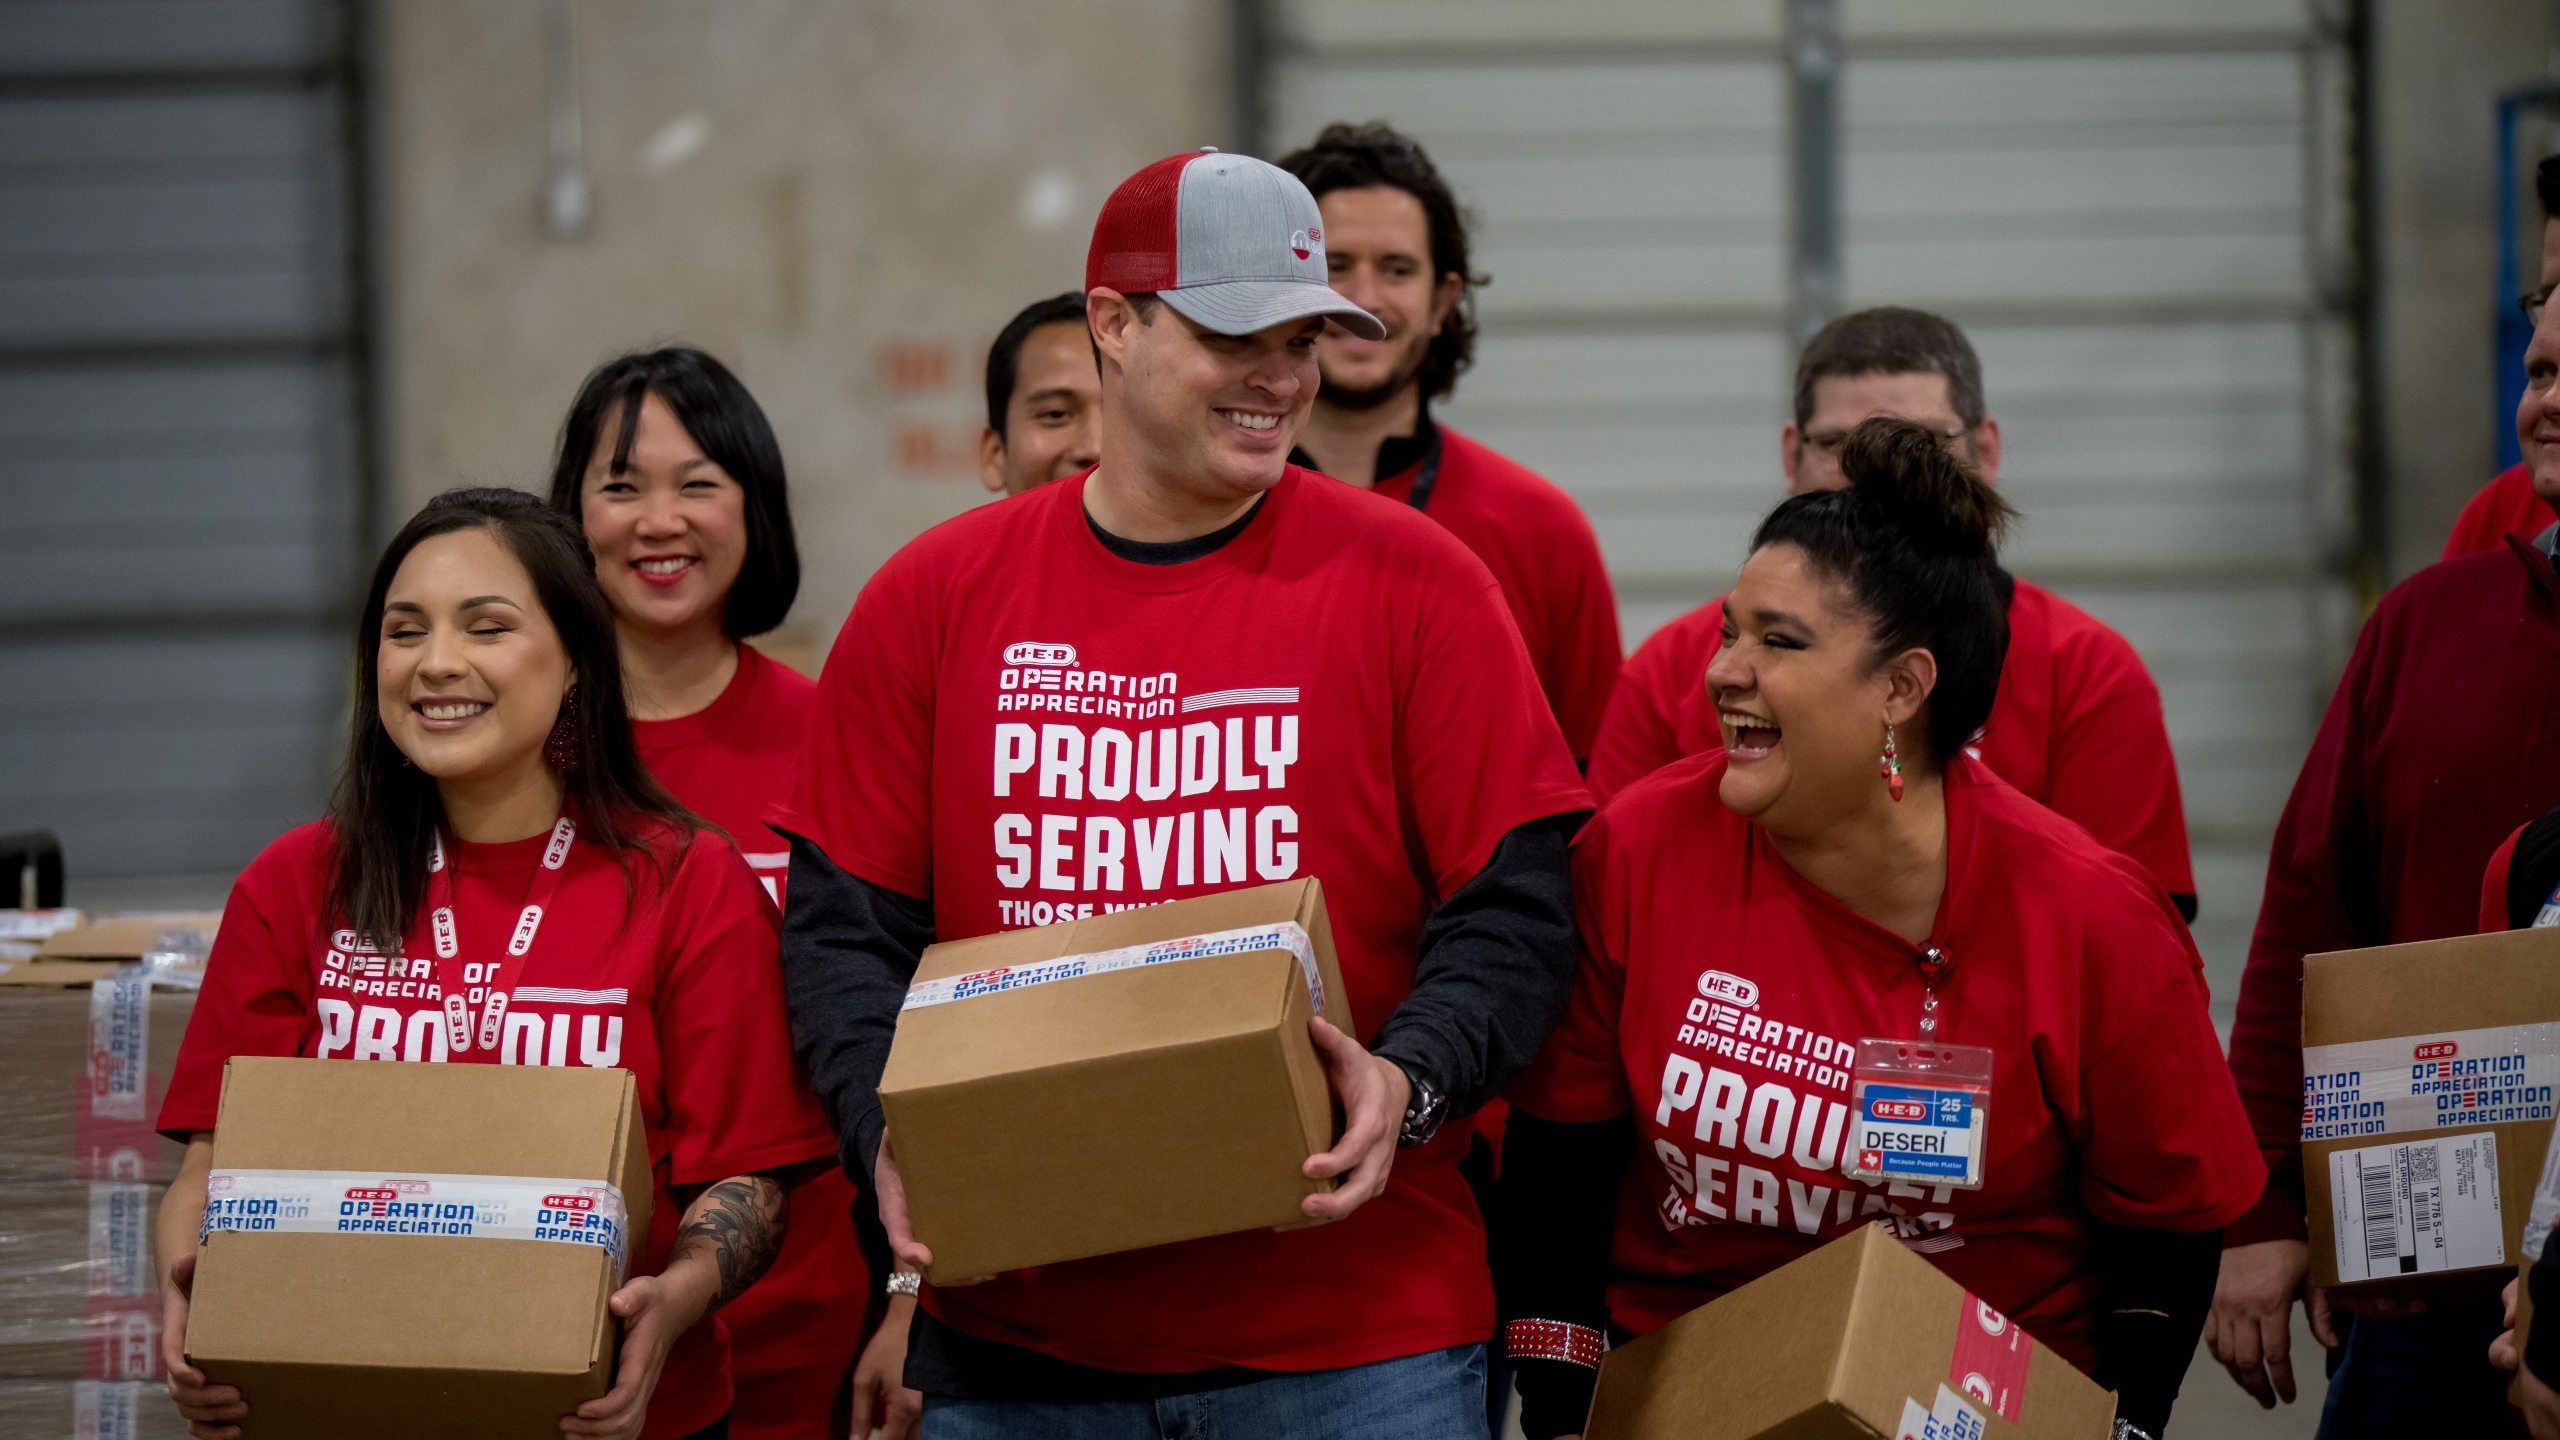 H-E-B employees carry boxes for Operation Appreciation